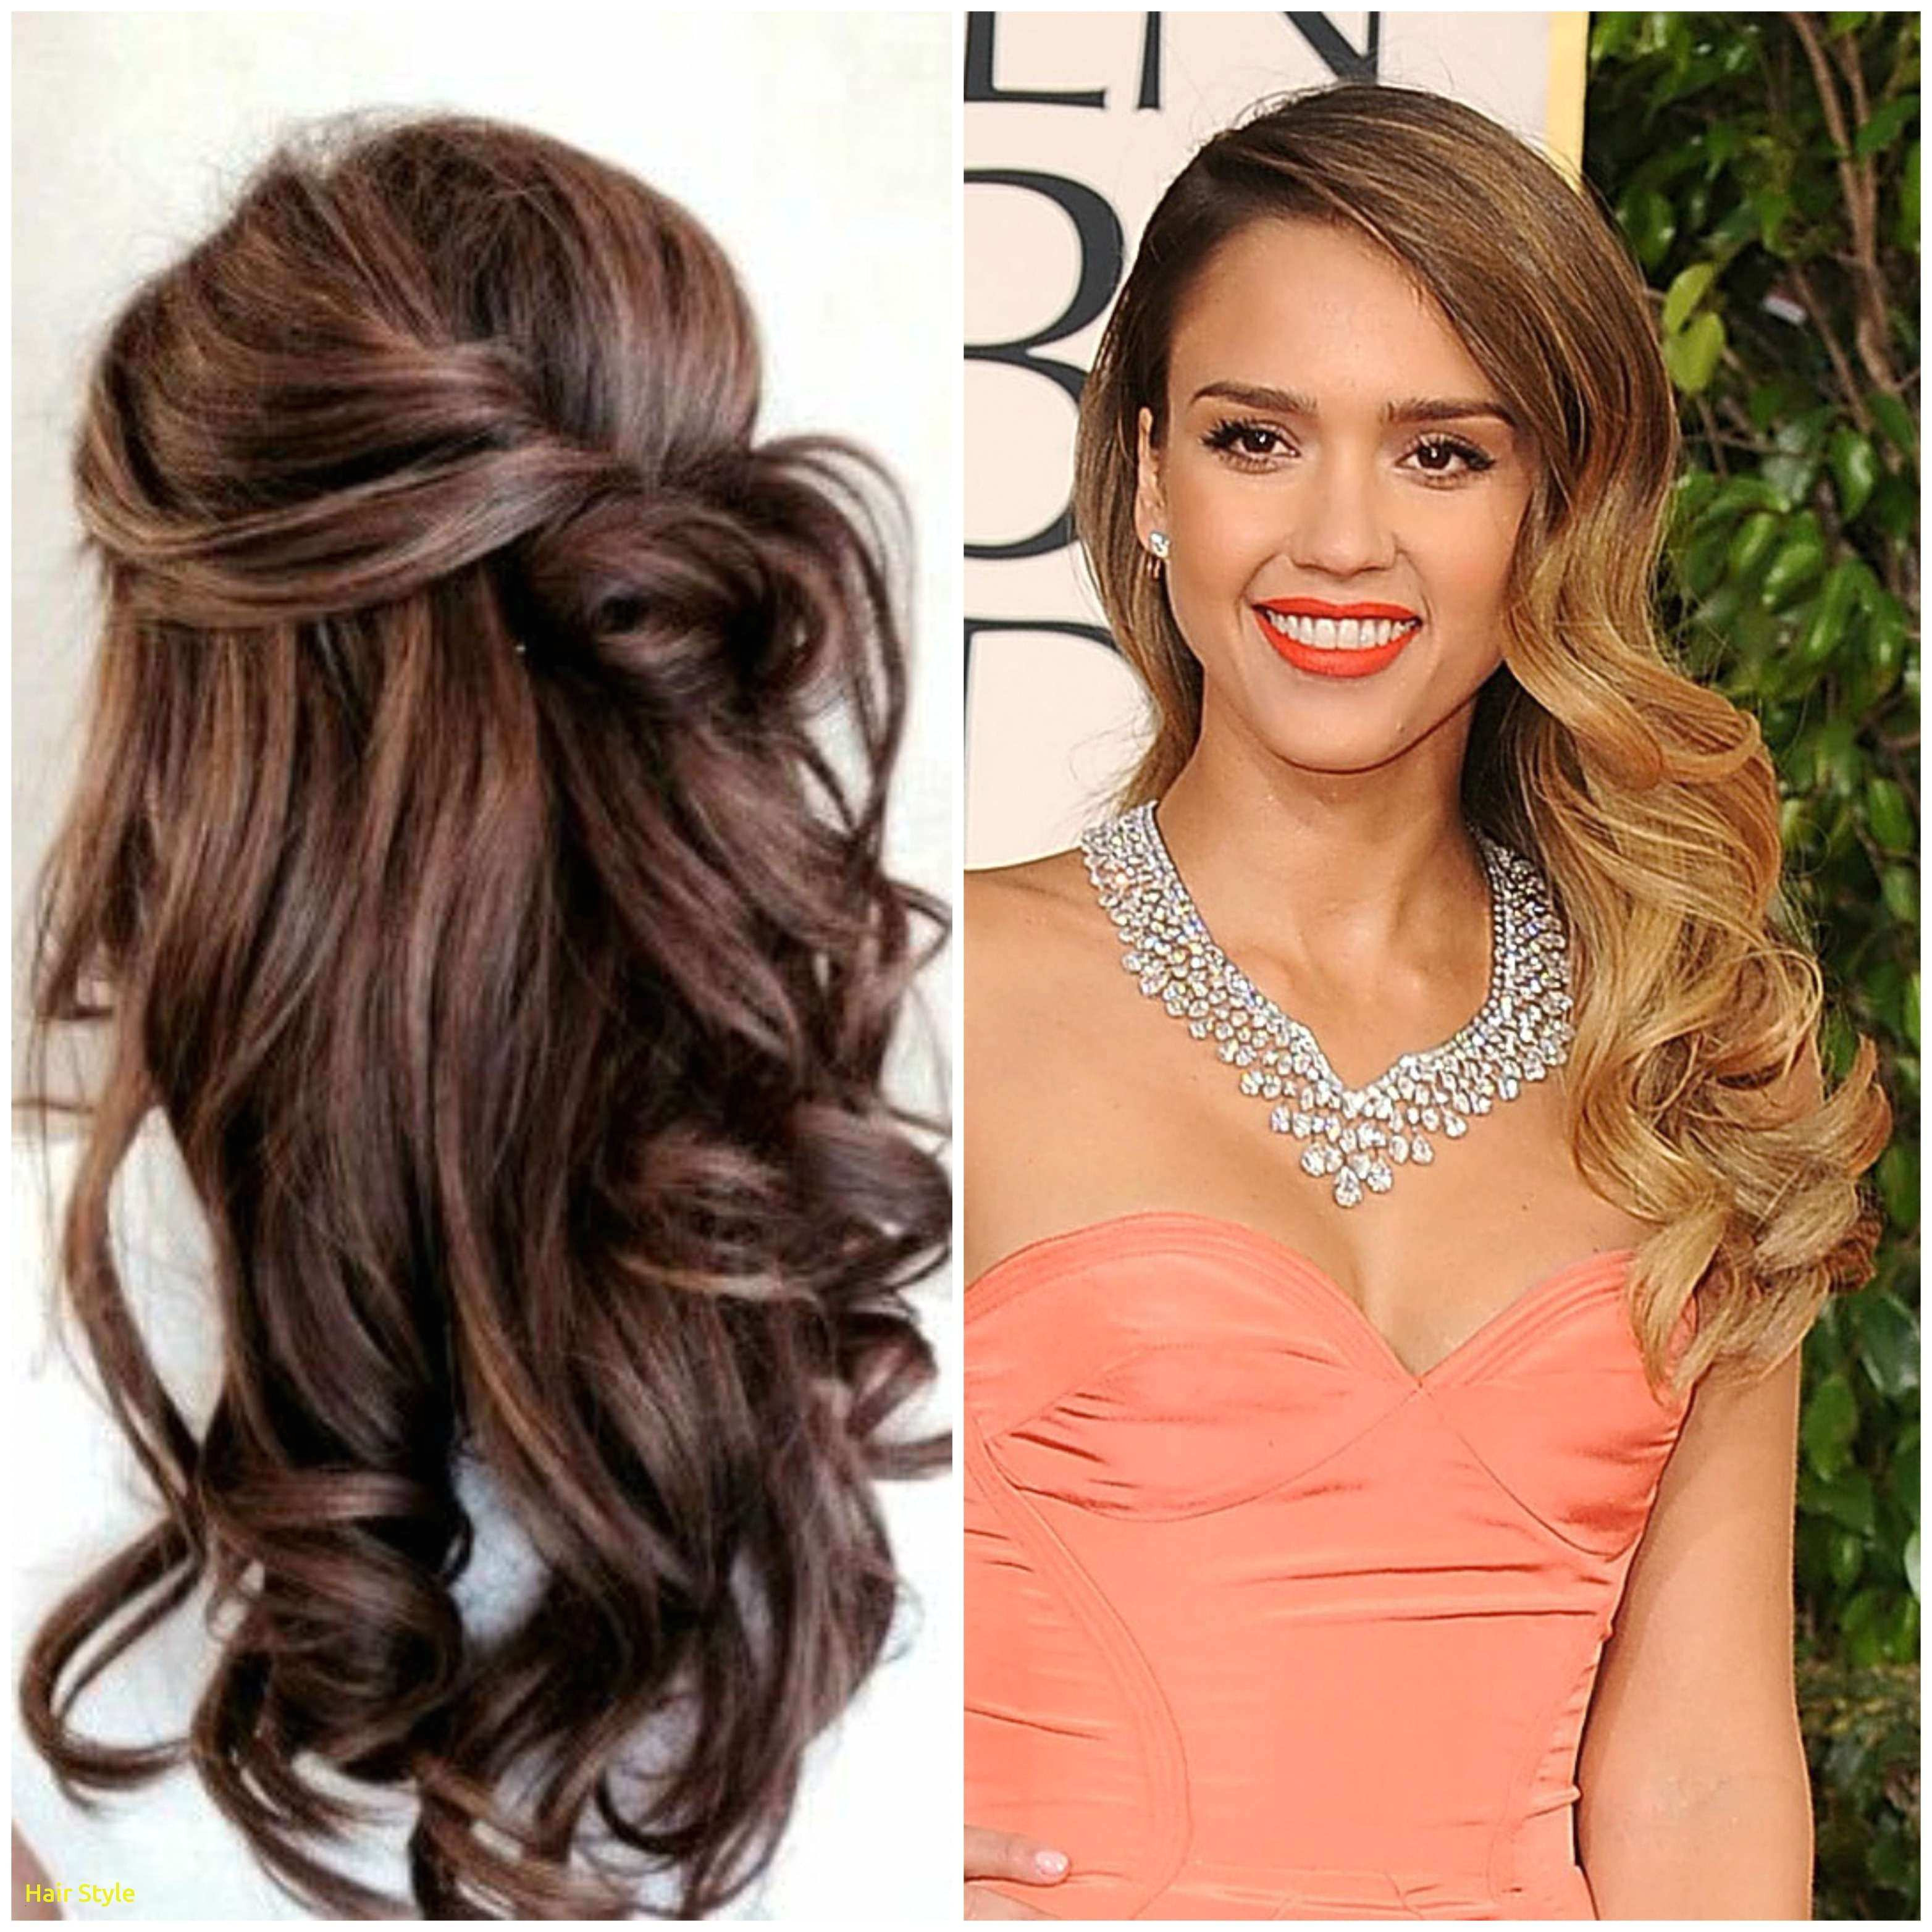 Simple Hairstyles For Girls With Medium Length Hair Beautiful Fresh Simple Hairstyles For Girls With Medium